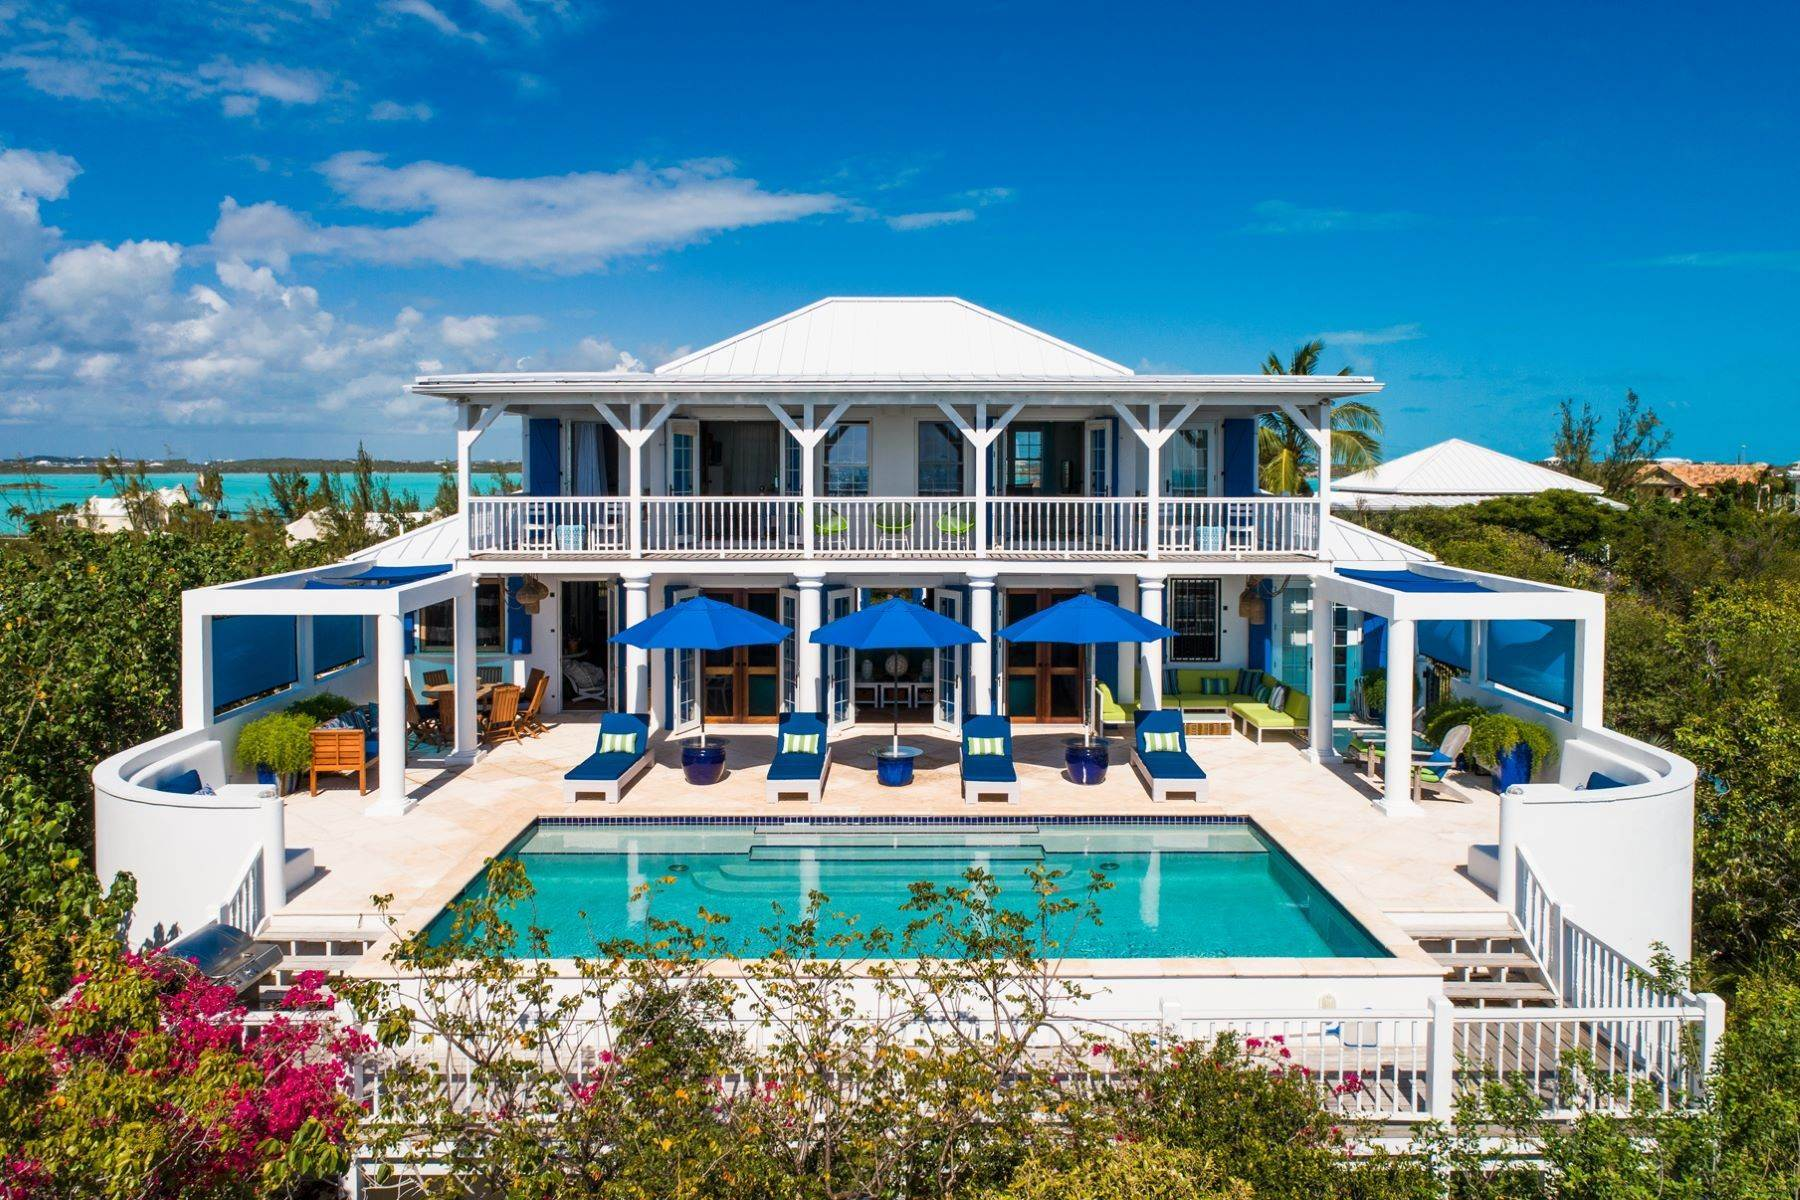 Single Family Homes for Sale at Bamboo House - Taylor Bay Beach View Taylor Bay, Providenciales TCI Turks And Caicos Islands